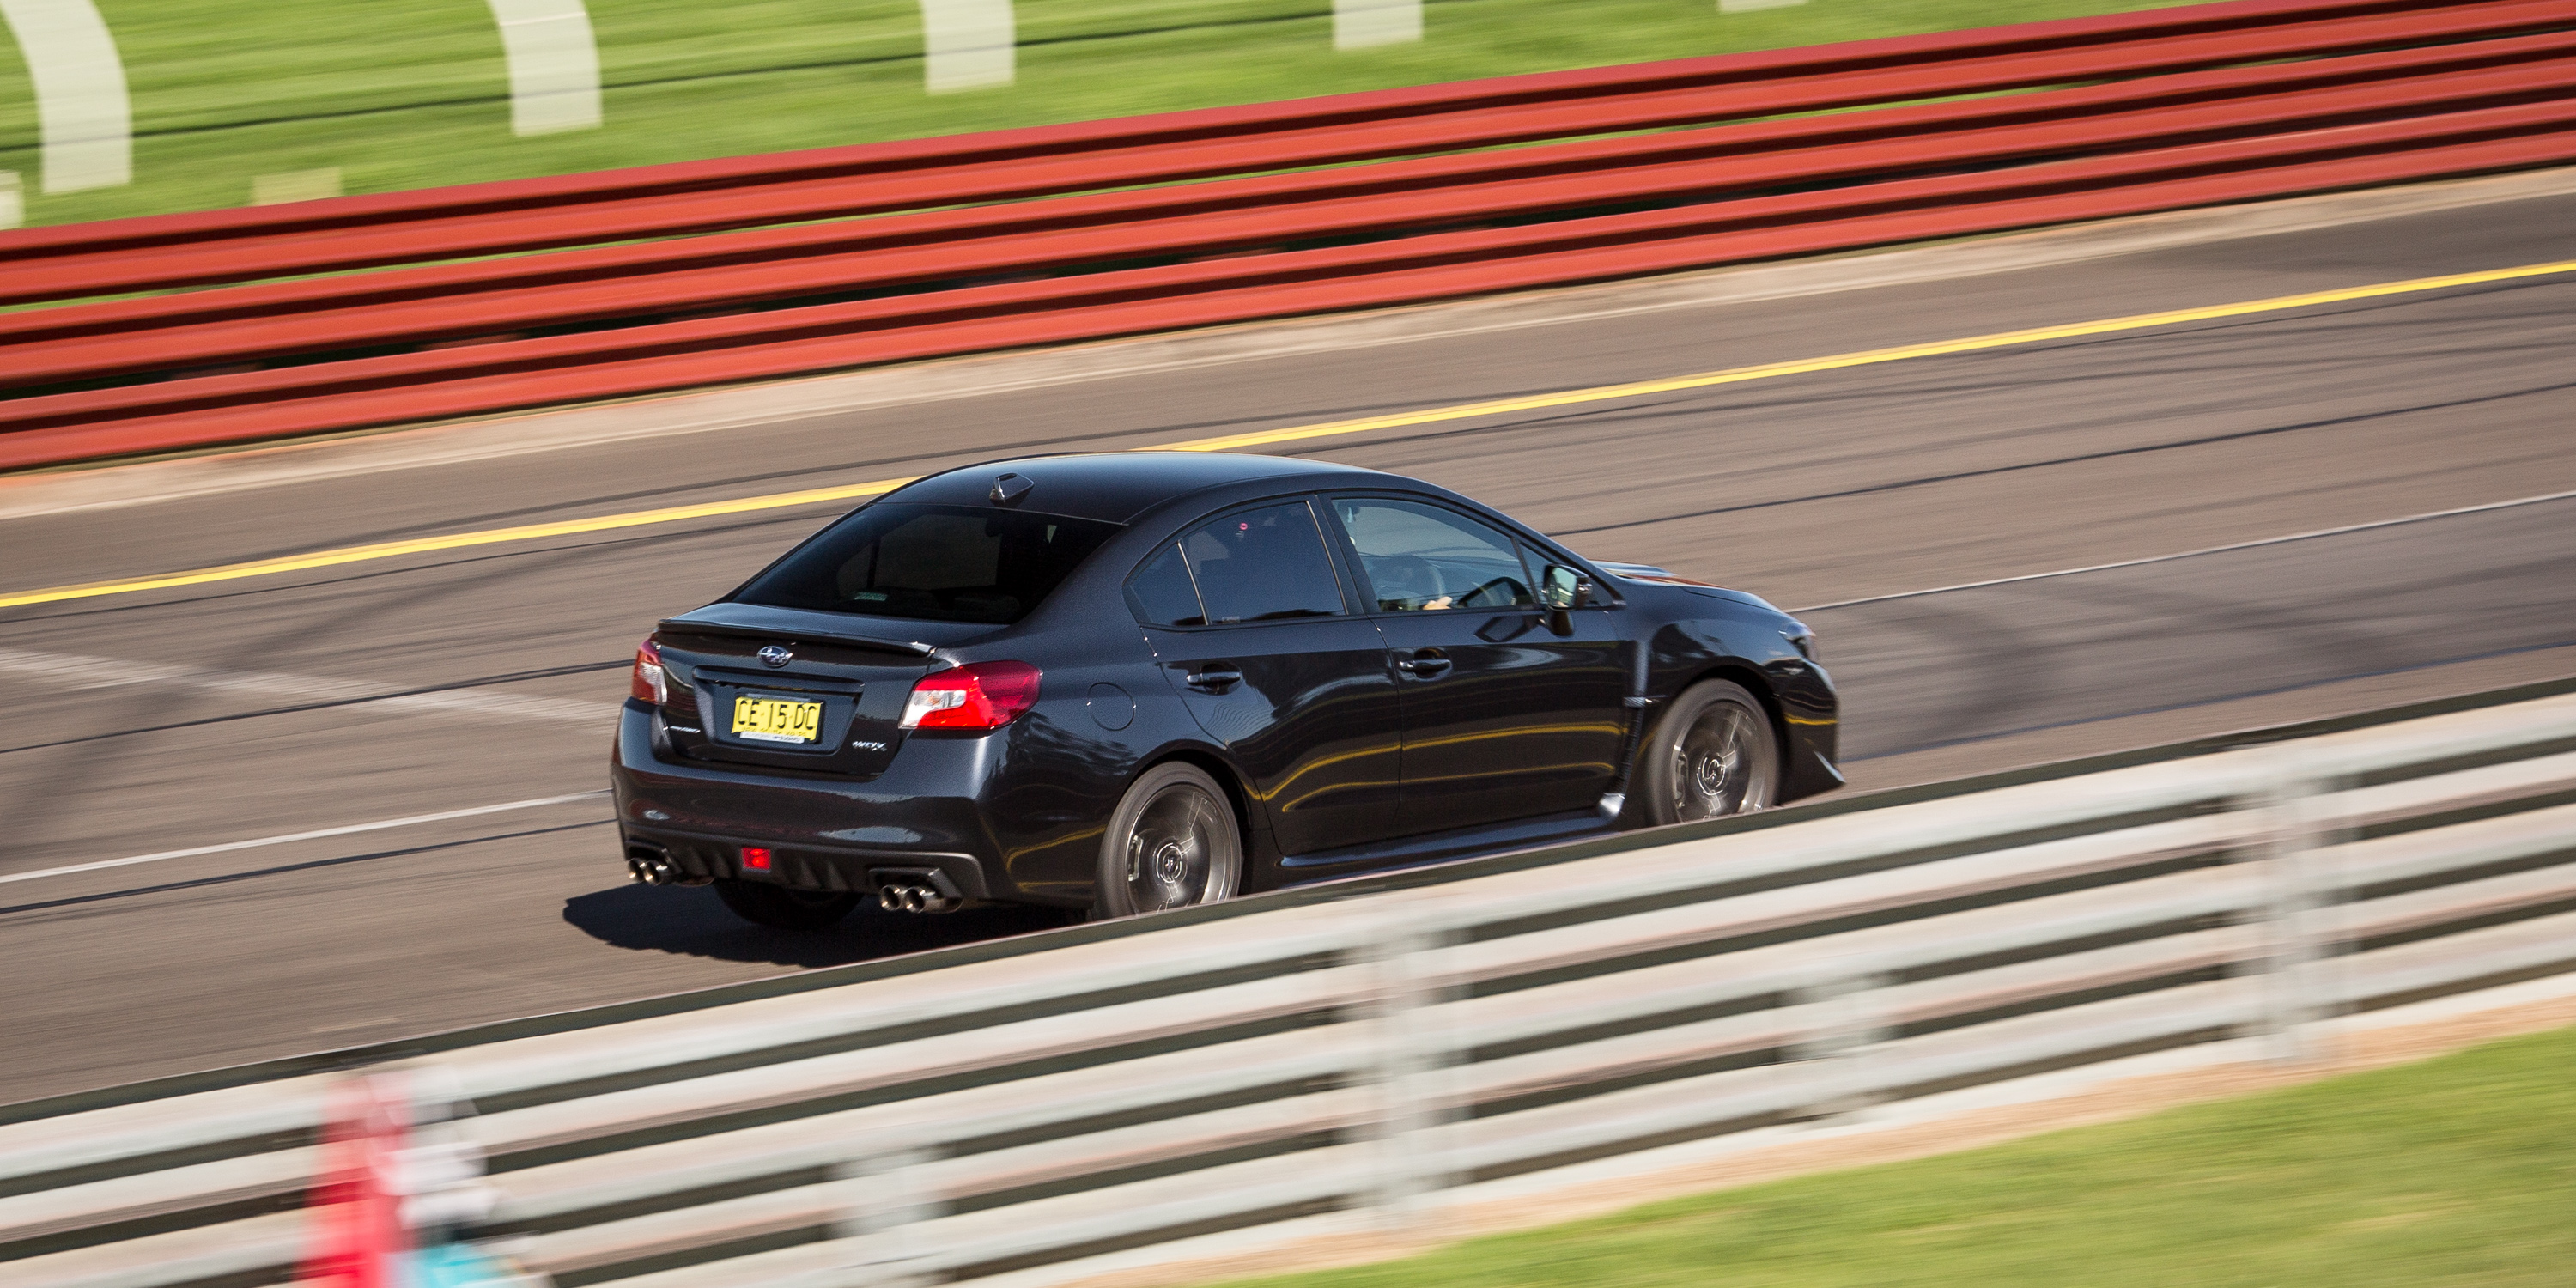 Wonderful 2016 Subaru WRX Review Sandown Raceway Weekender  Photos